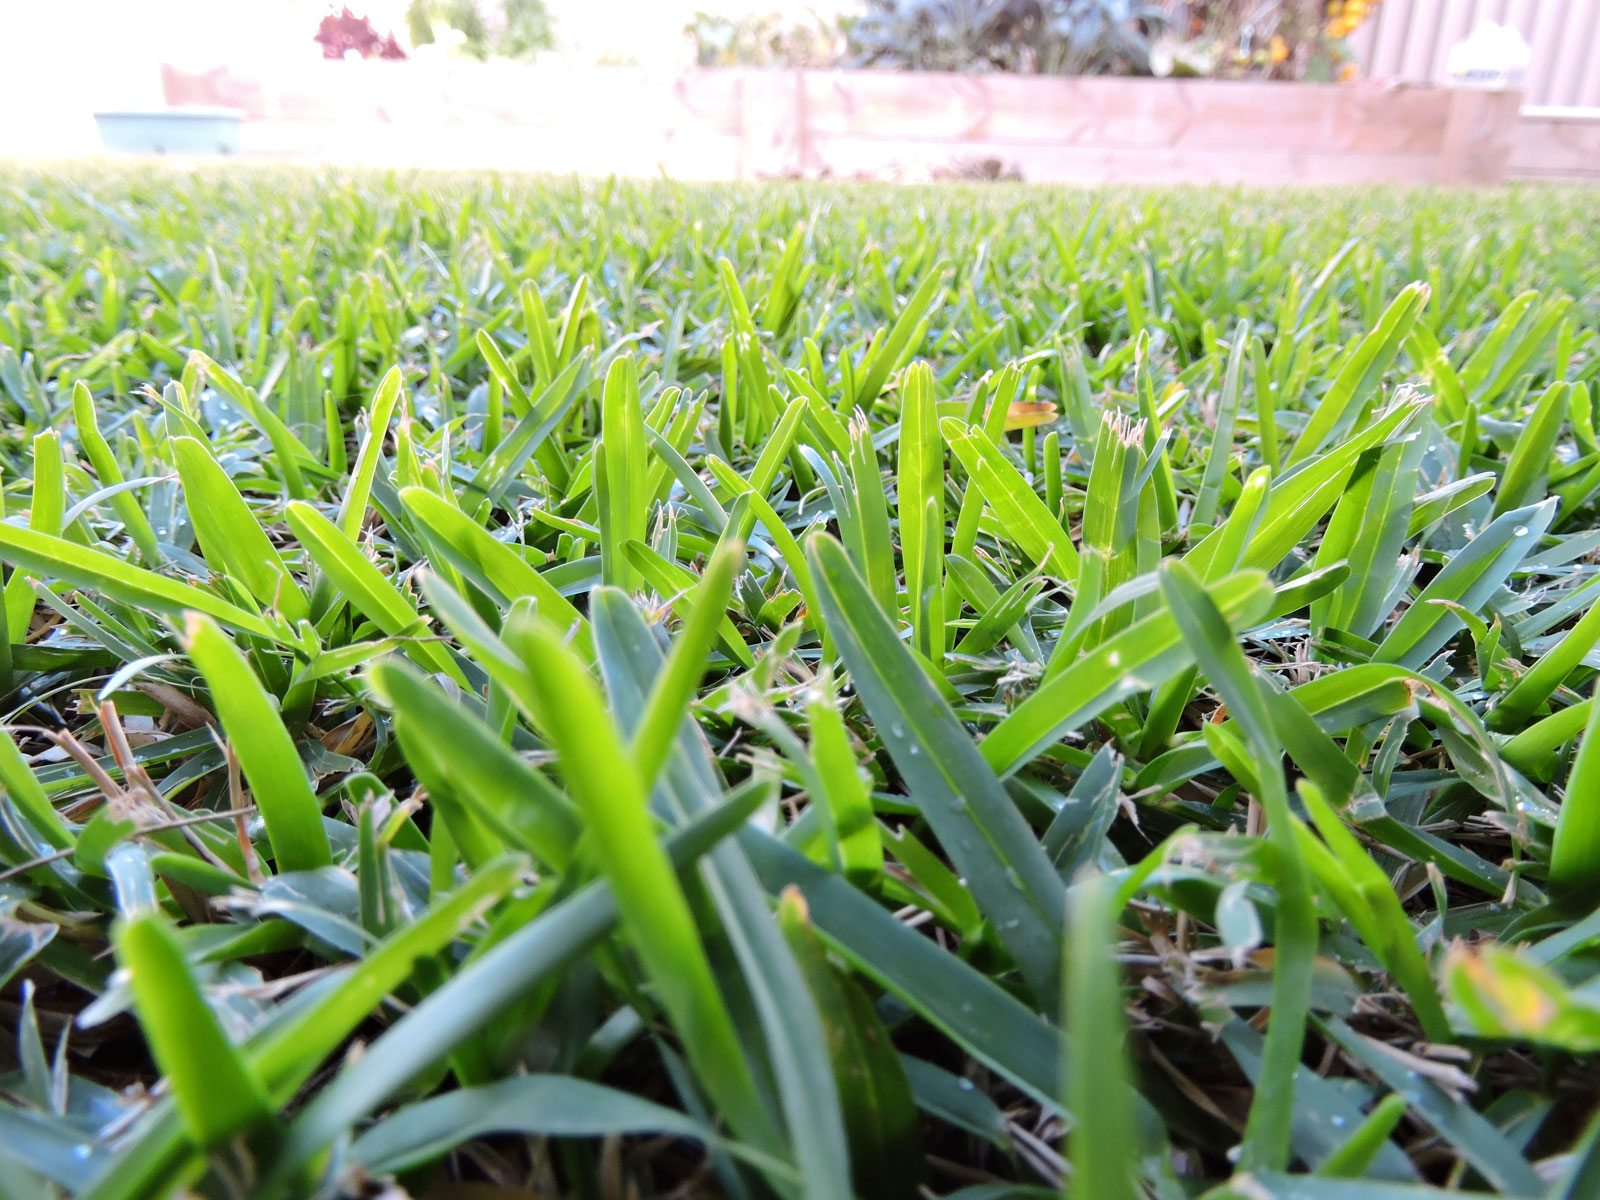 Drought Tolerant Grass Varieties What Are Some Types Of Drought Resistant Grass For Lawns